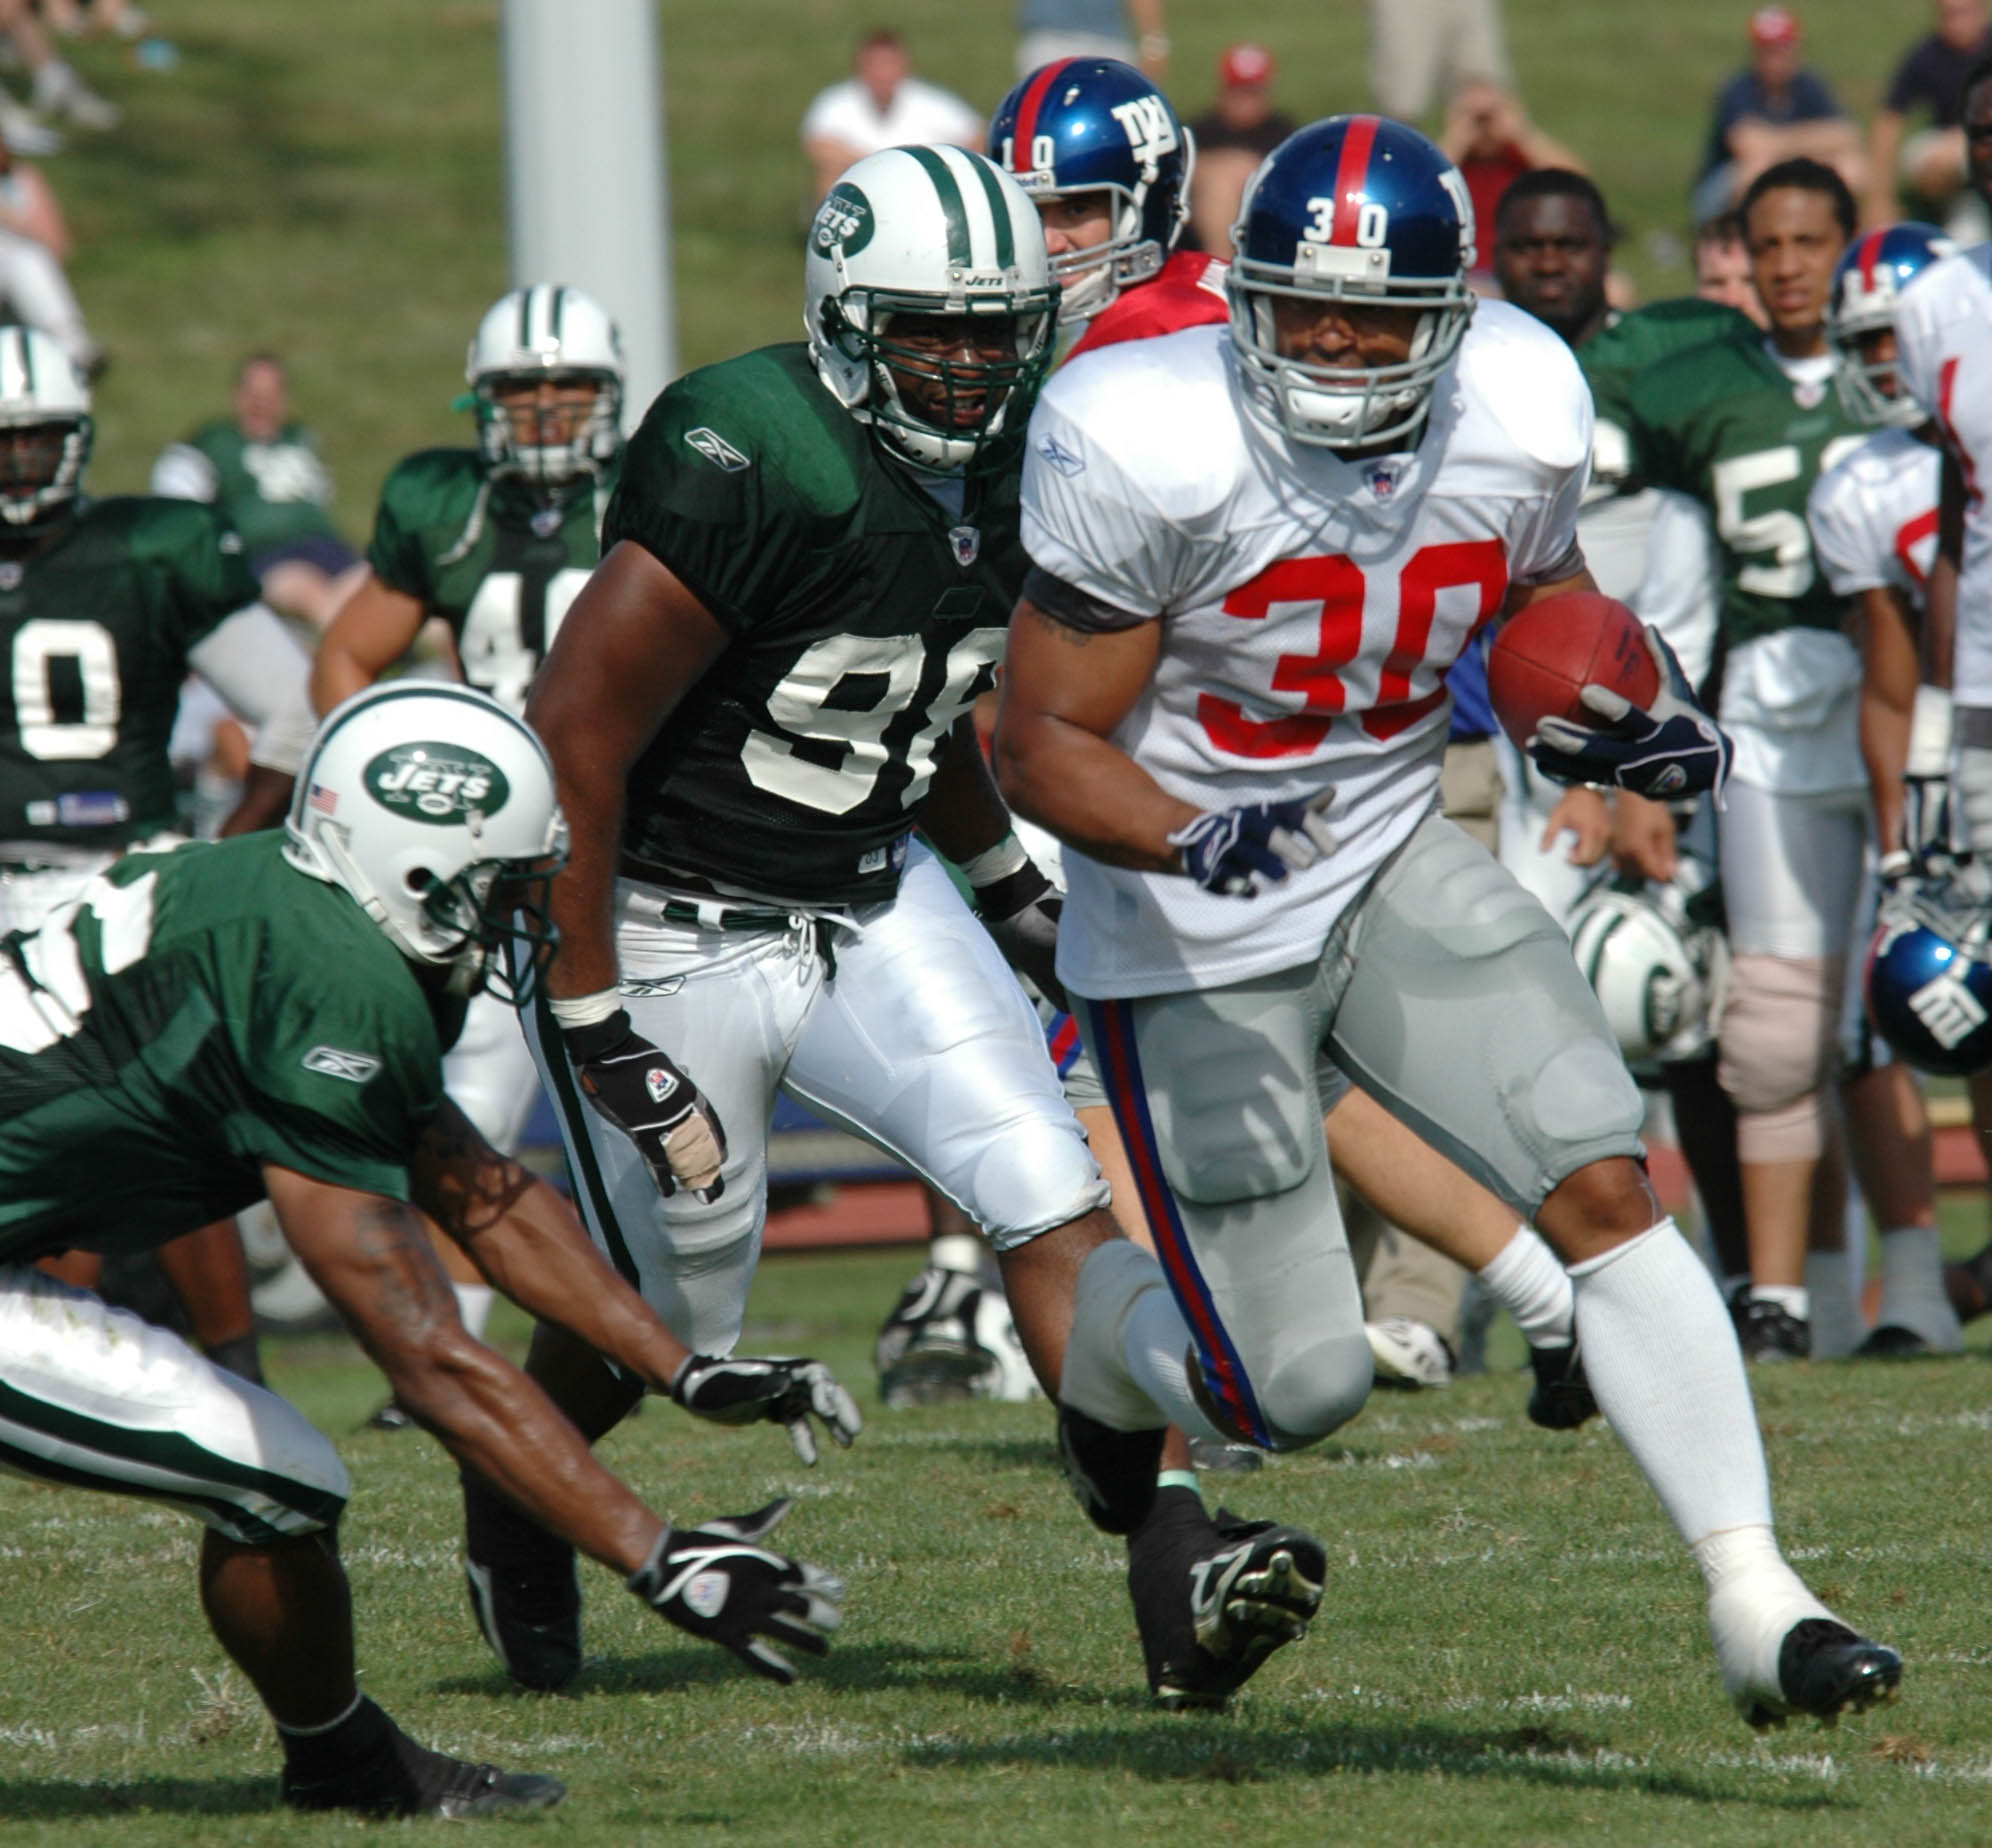 12 New Giants and New Jets Training Camp 2005.jpg